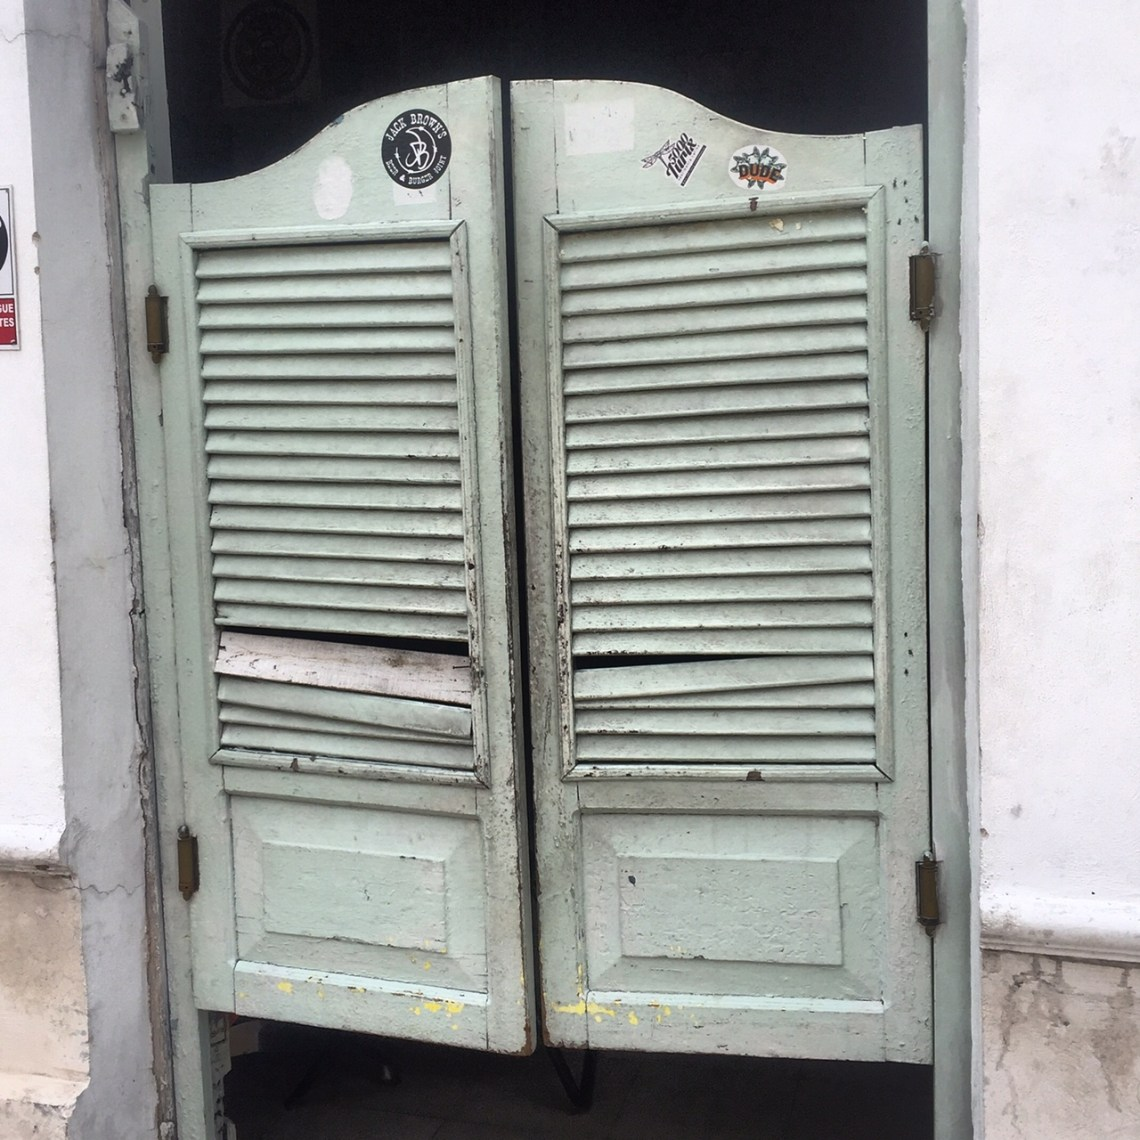 These battered doors have swung open for tequila-swilling masses for nearly 100 years. Merida, Mexico. La Negrita Cantina.